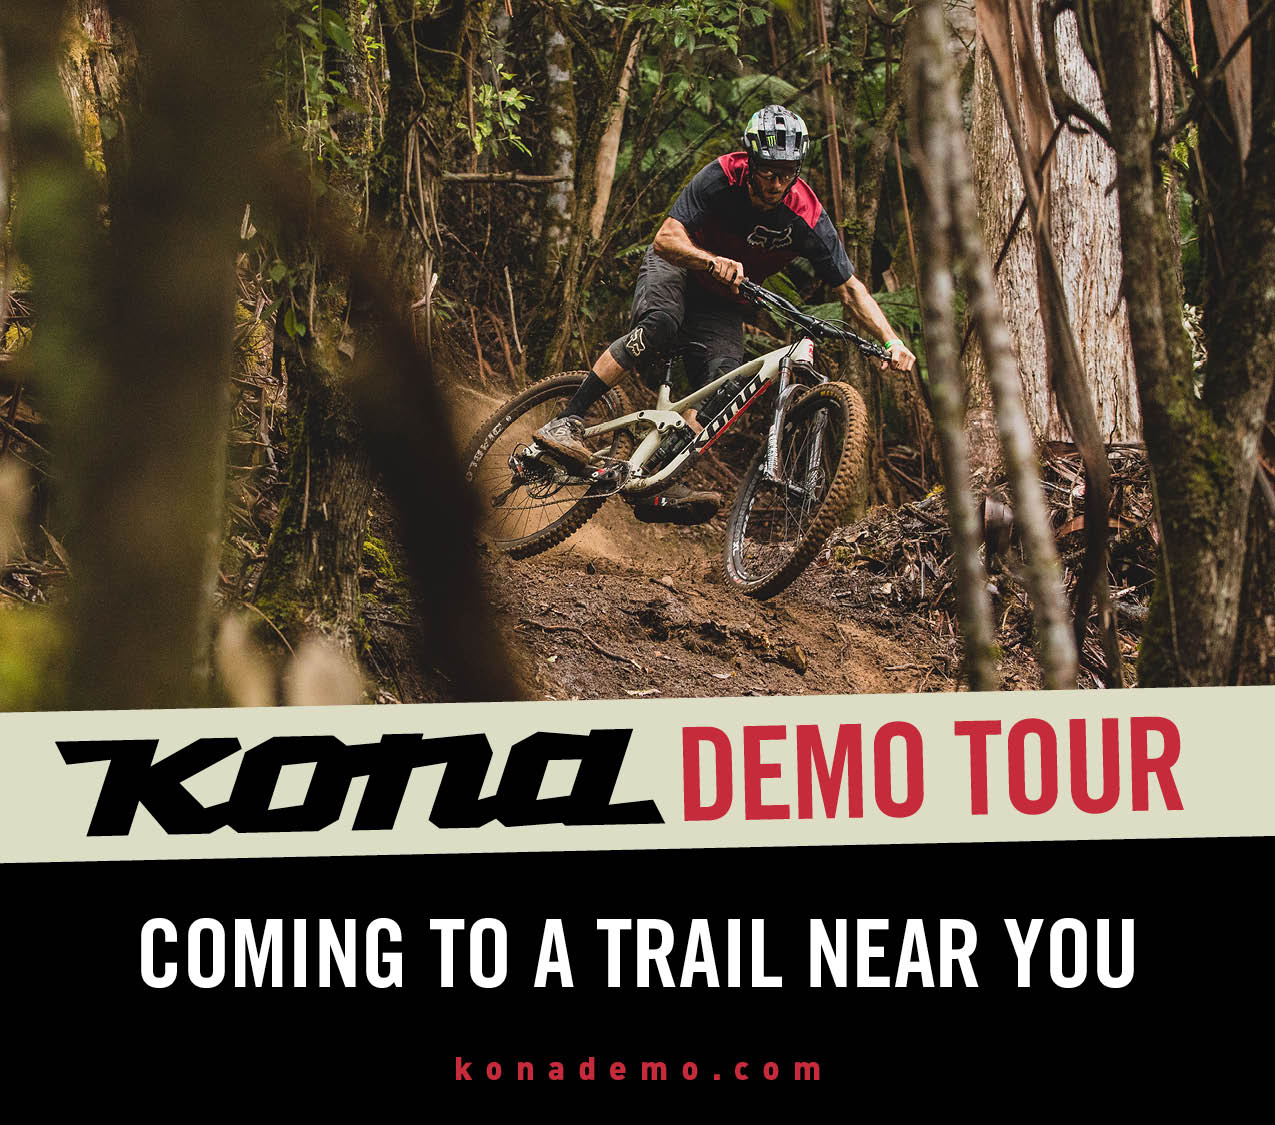 Arkansas, Oklahoma, Kansas, & Missouri, the KONA demo tour is headed your way!